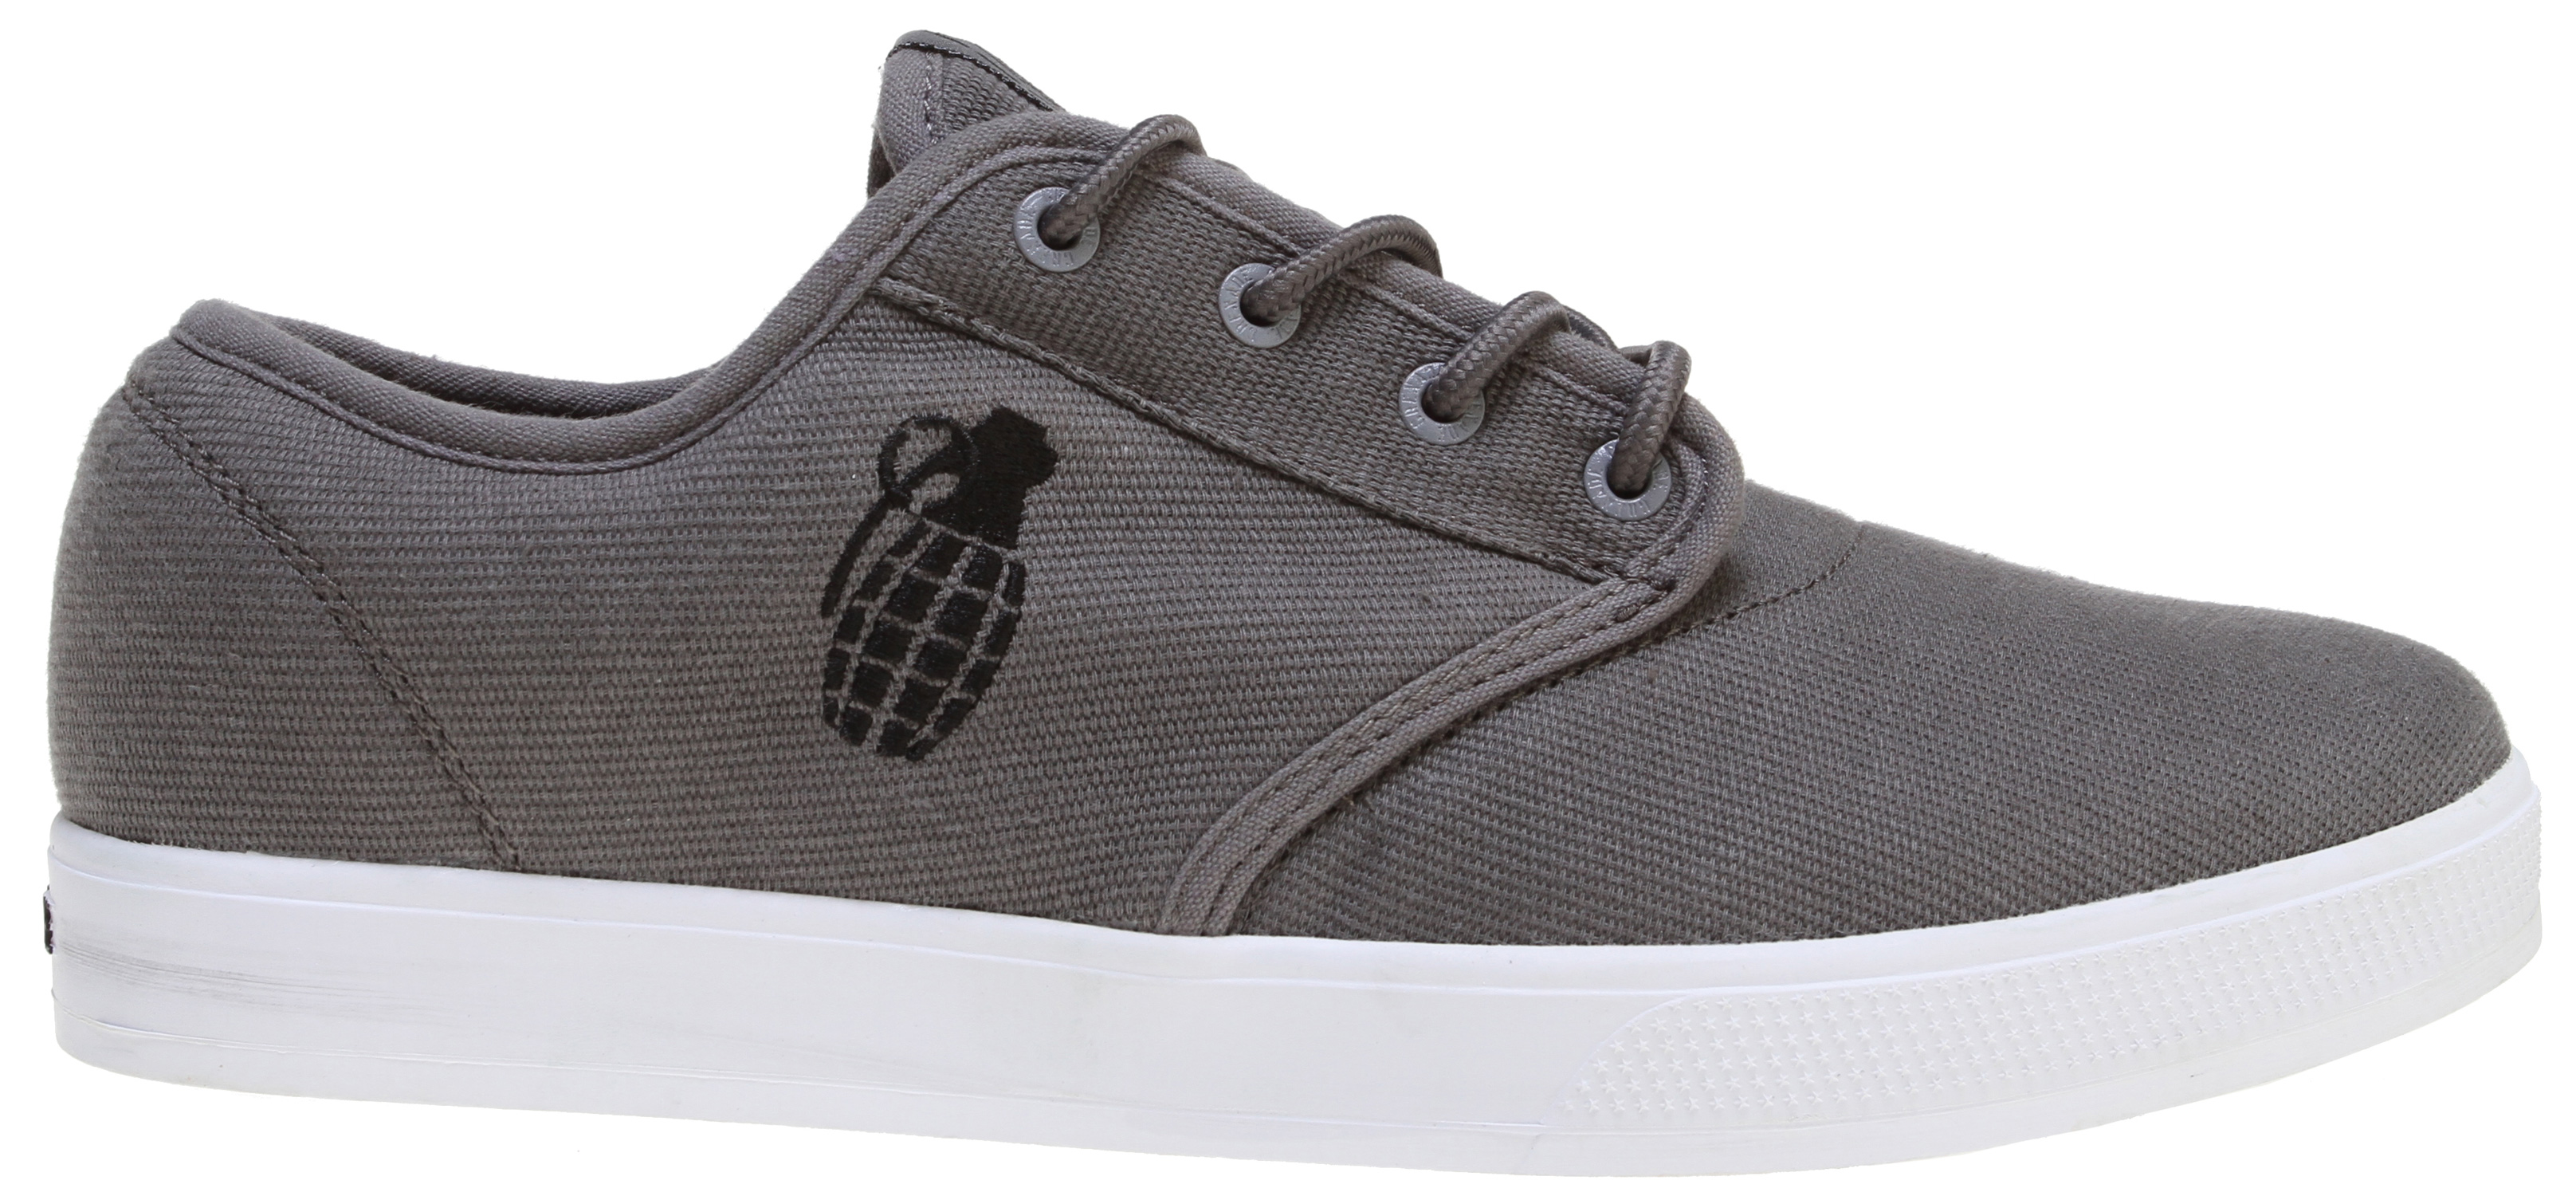 "The Grenade Unlaced Shoes features a casual unlaced look, perfect to wear outside during the day. Super comfortable, these shoes are ideal to wear for long periods at a time. Sport this look with a casual T-shirt and a pair of jeans and your outfit is complete. You're now ready to hit the town in ultra comfort and style.Key Features of the Grenade Unlaced Shoes: Grenade Shaped Lace Toggles A Pair of Grenade Branded Socks 8.5"" Die Cut Grenade Sticker Dogtags Shoebox itself is a Grenade Stencil - $27.95"